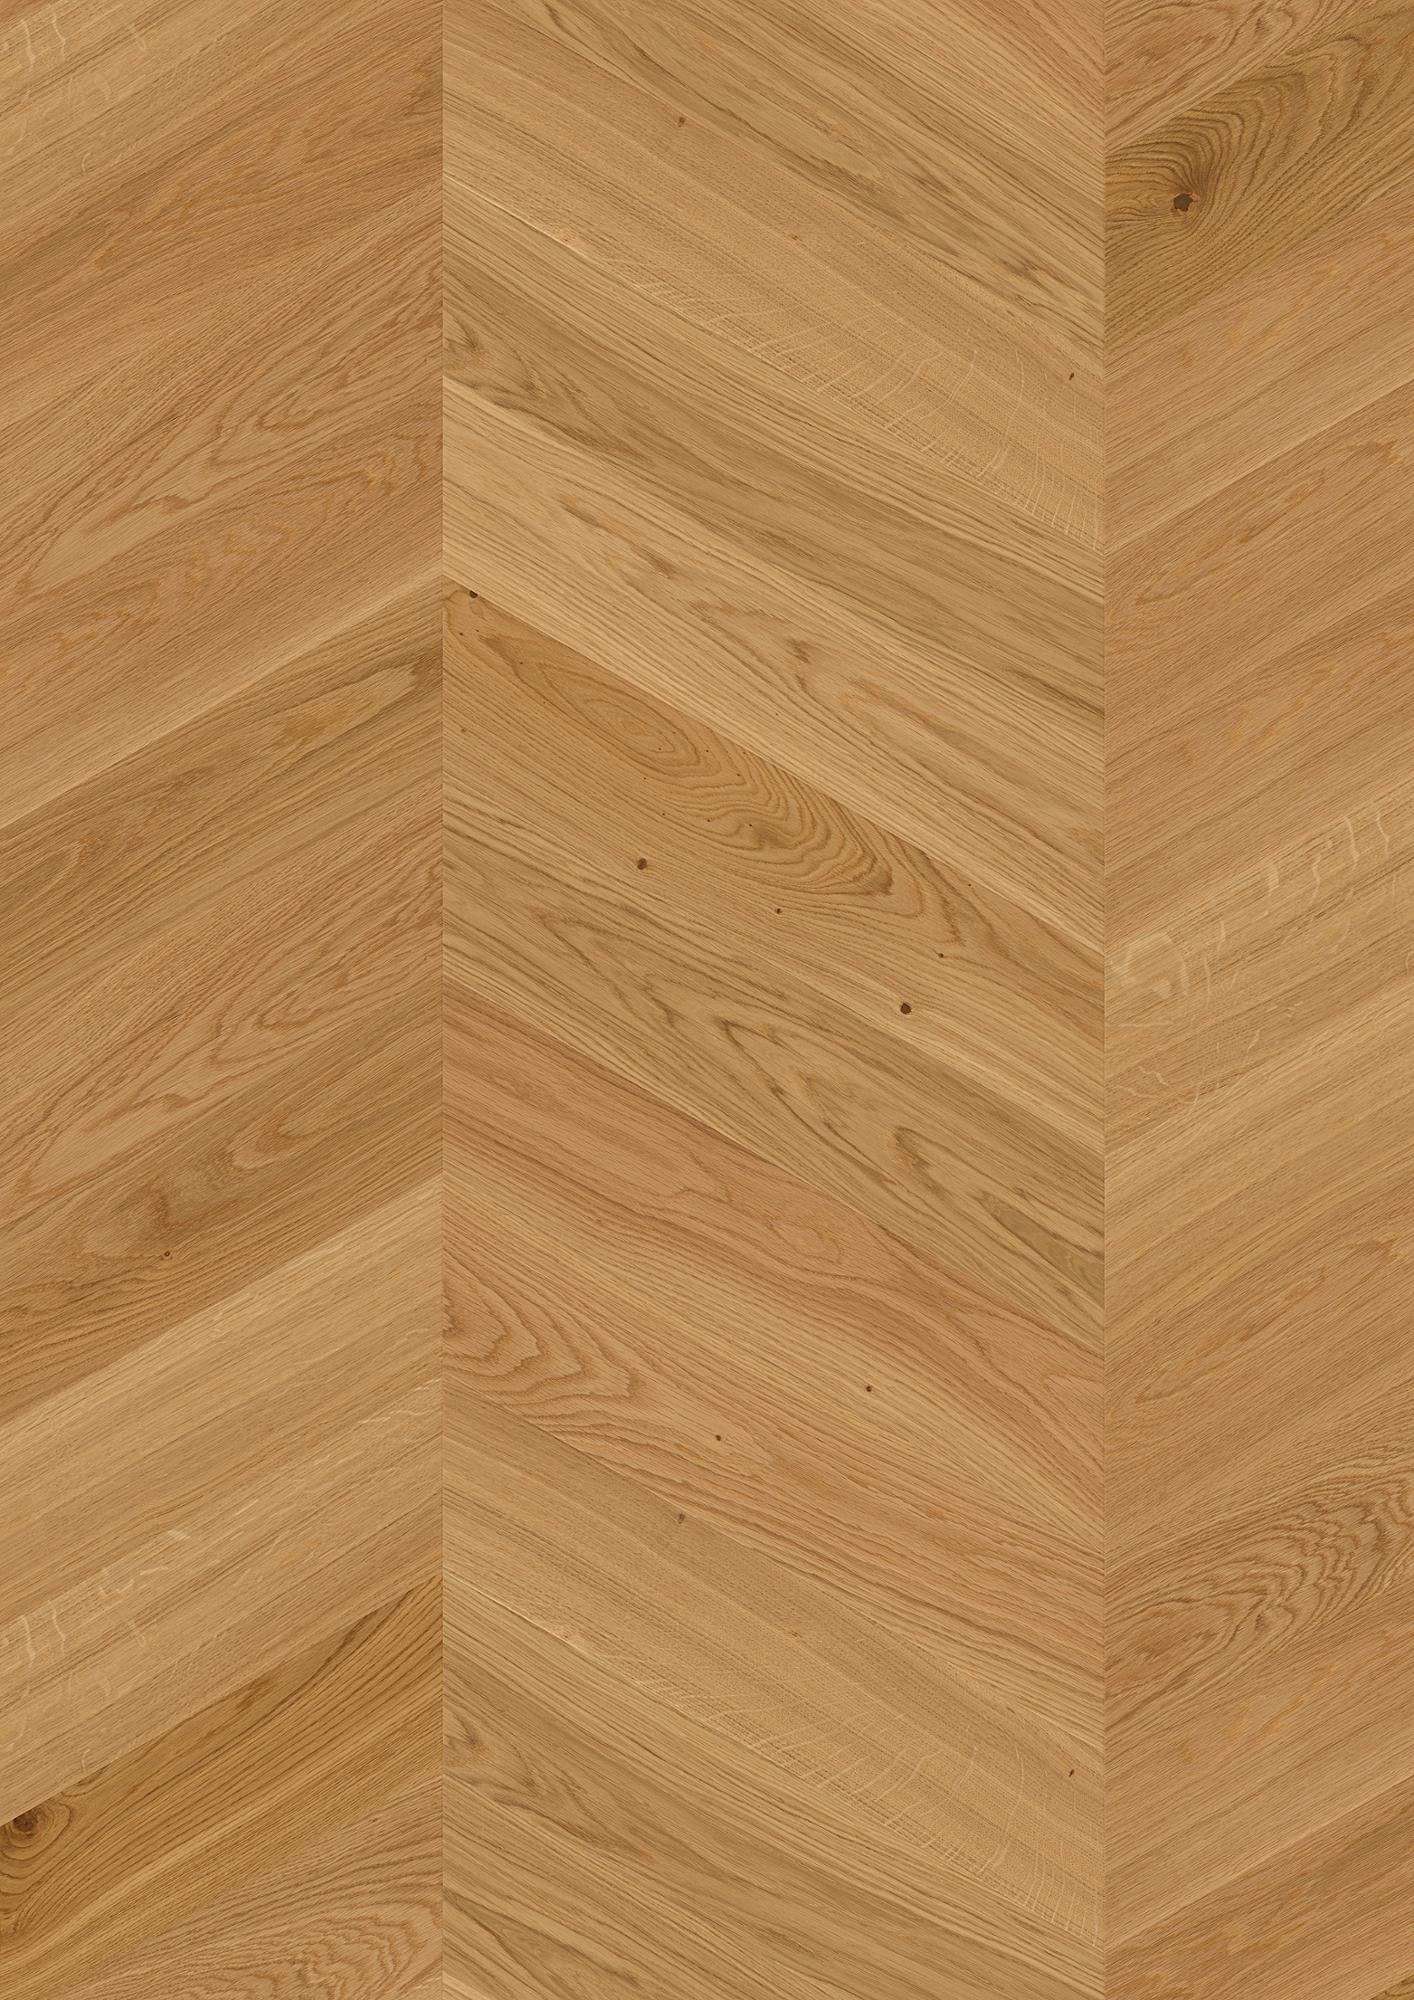 Oak Adagio, Live Natural oil, Brushed, Beveled 4V, Plank Chevron, 14x138x611mm